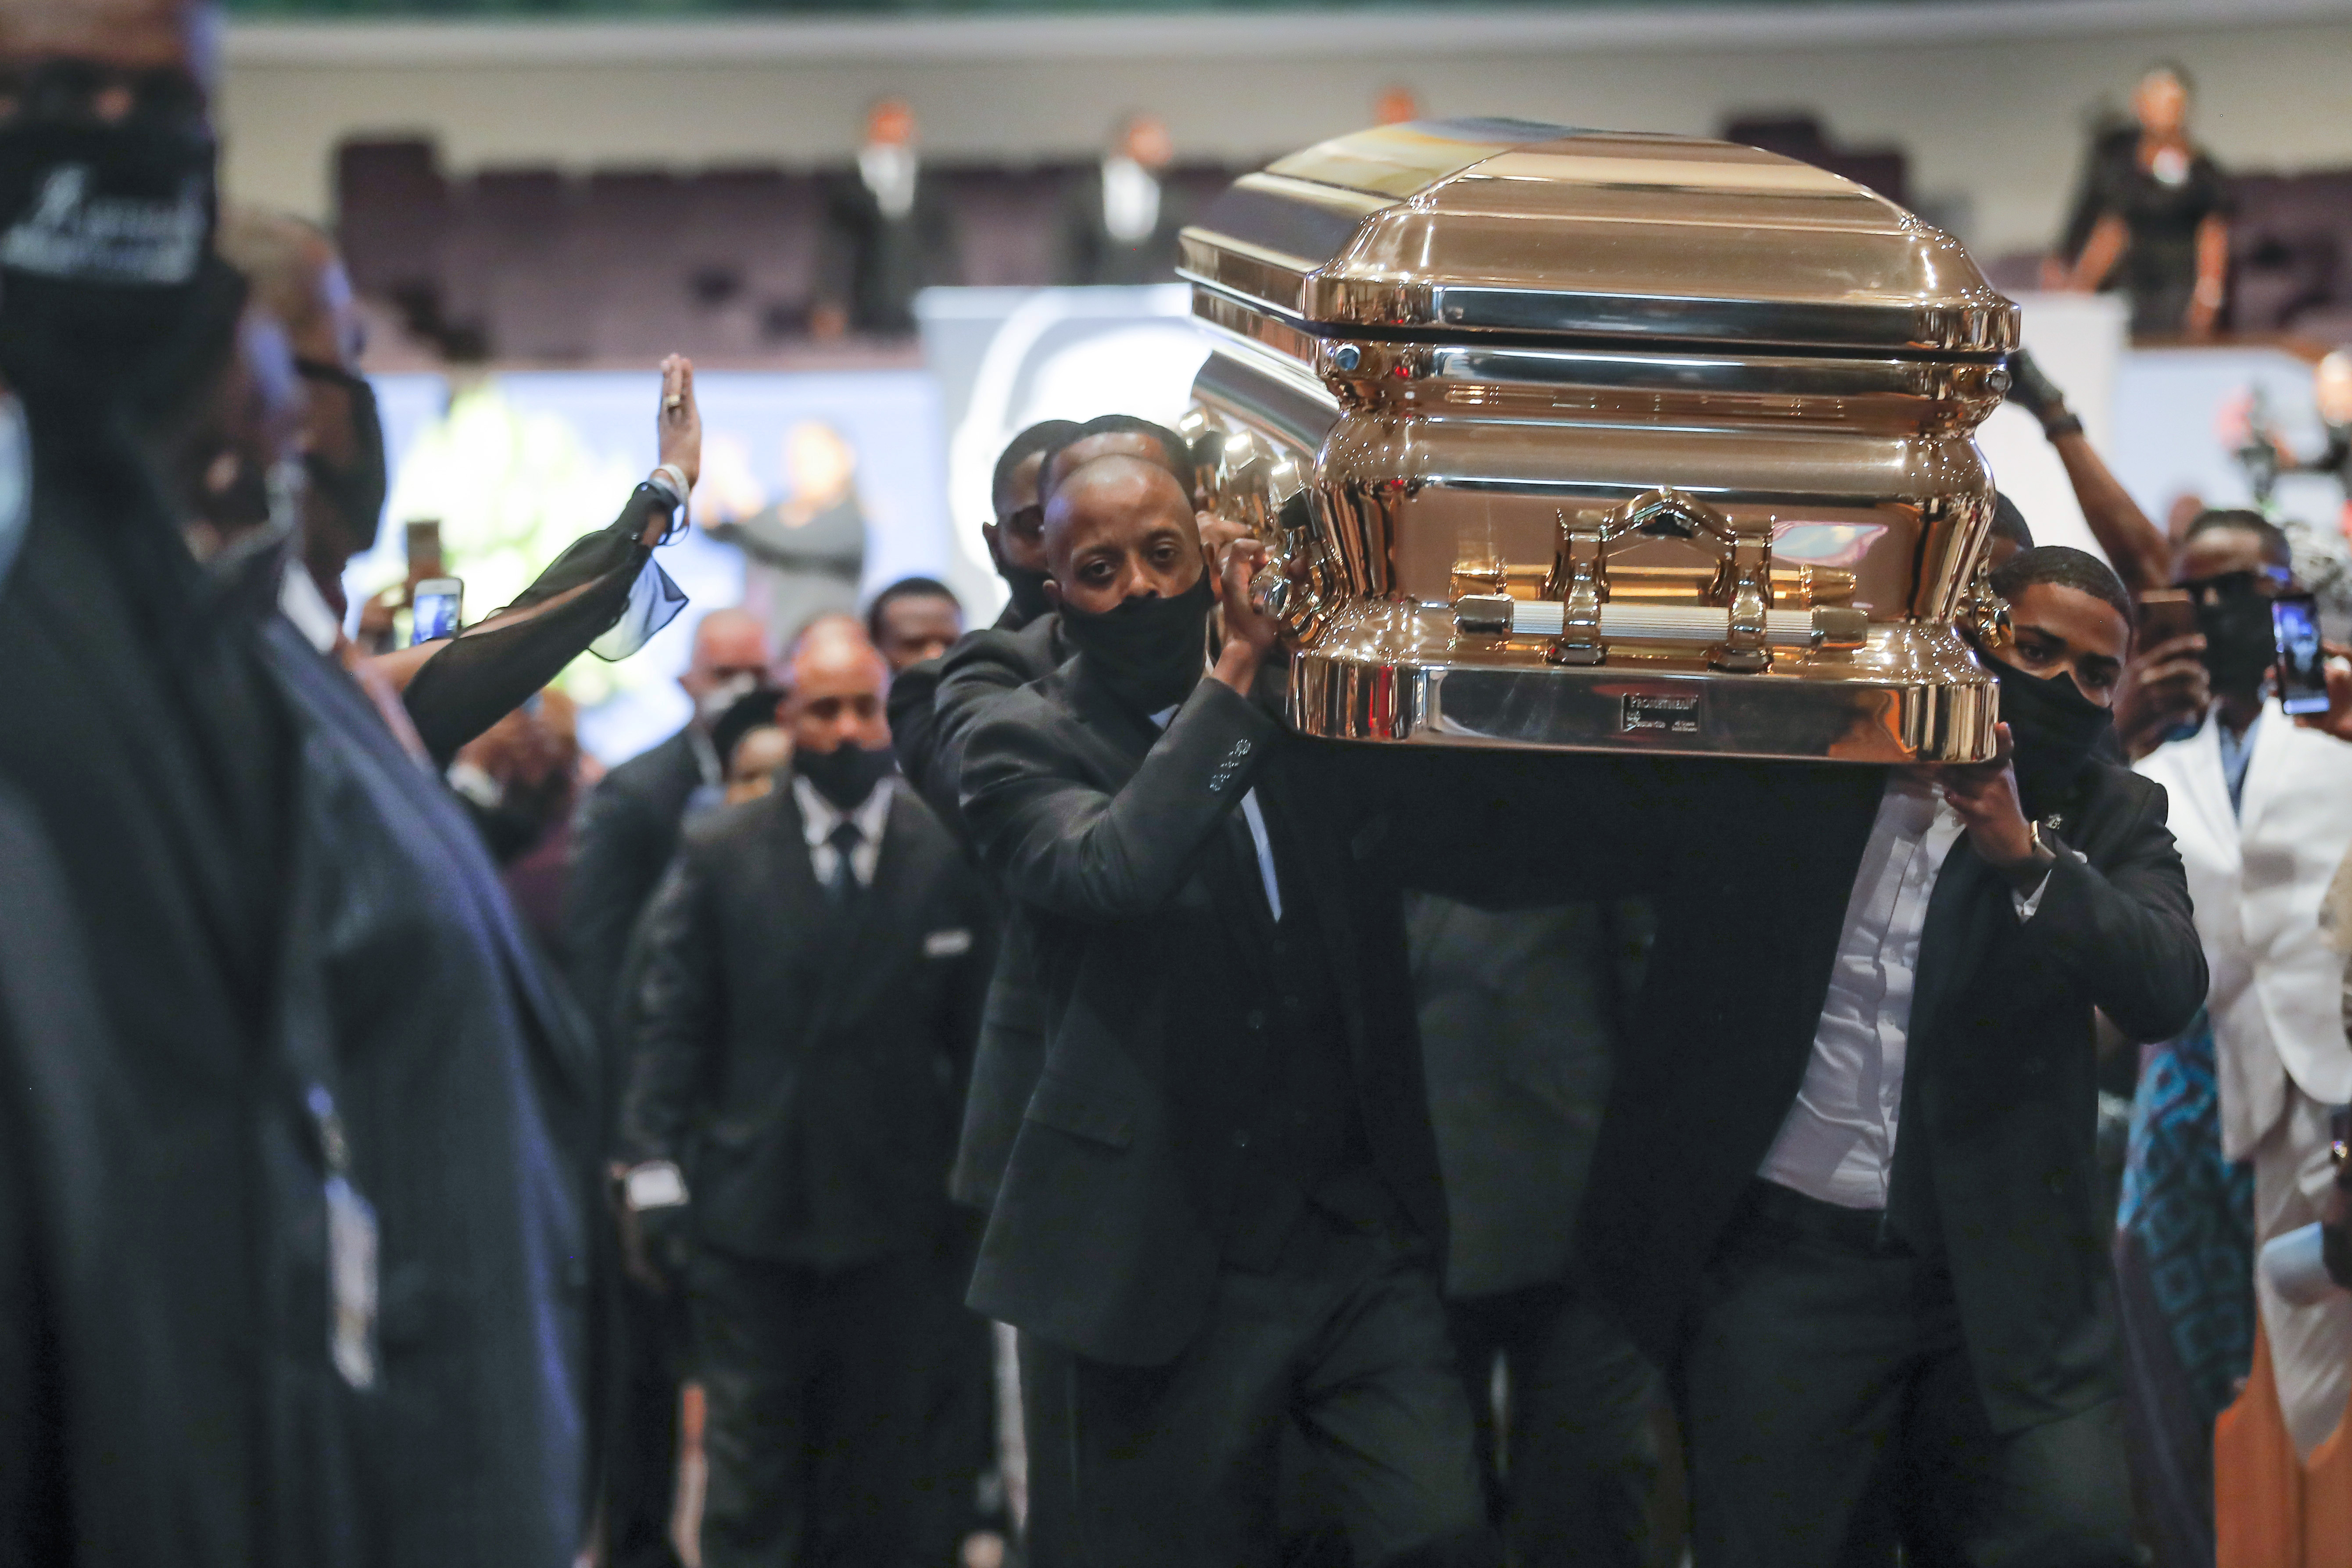 Pallbearers recess out of the church with the casket following the funeral for George Floyd on Tuesday